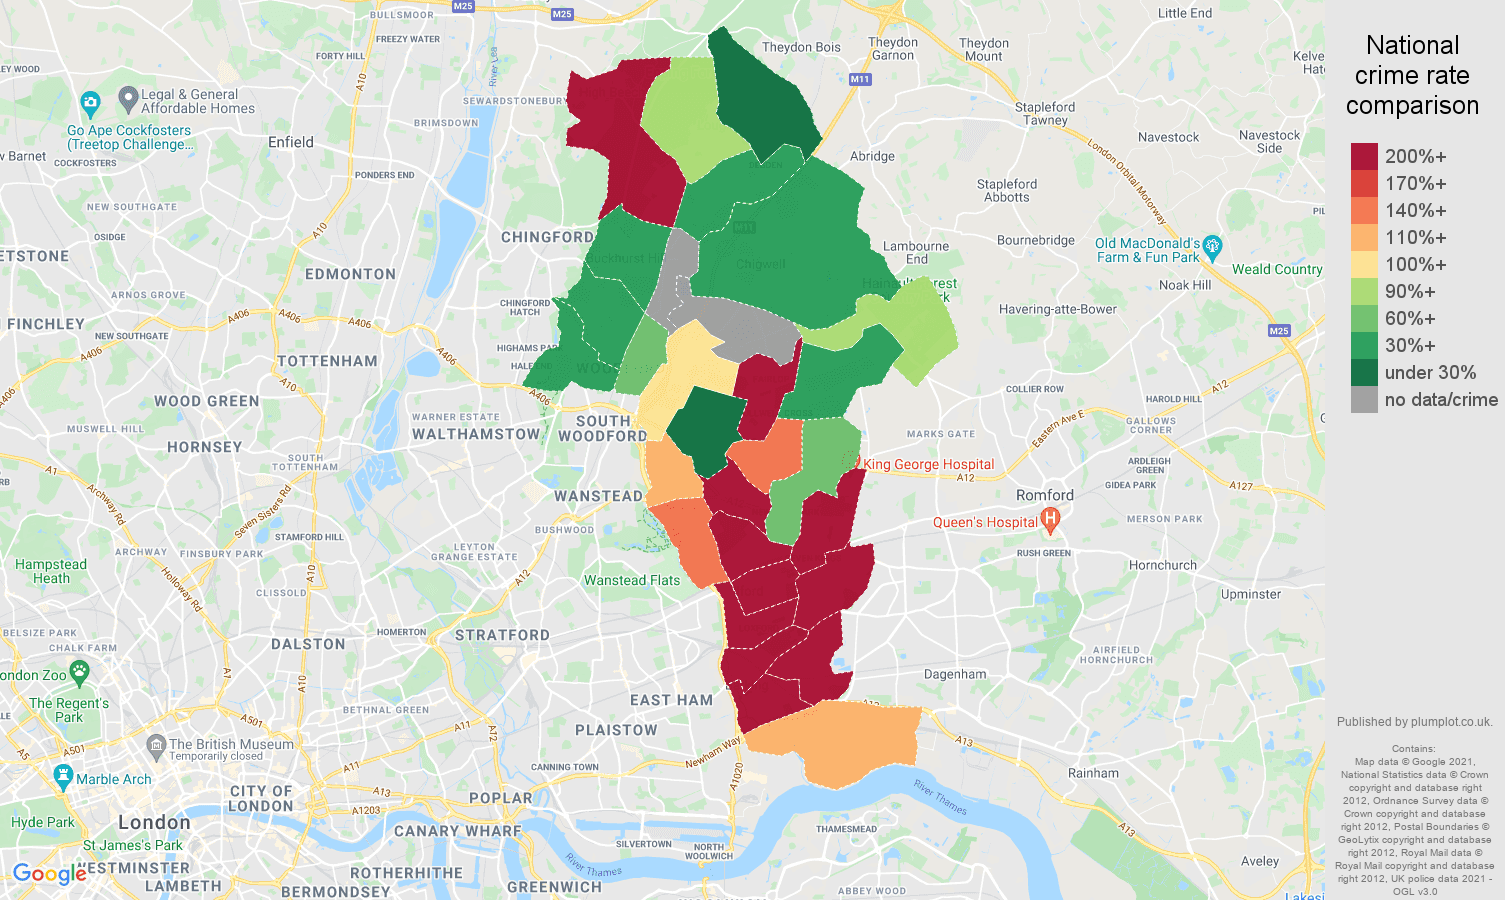 Ilford theft from the person crime rate comparison map